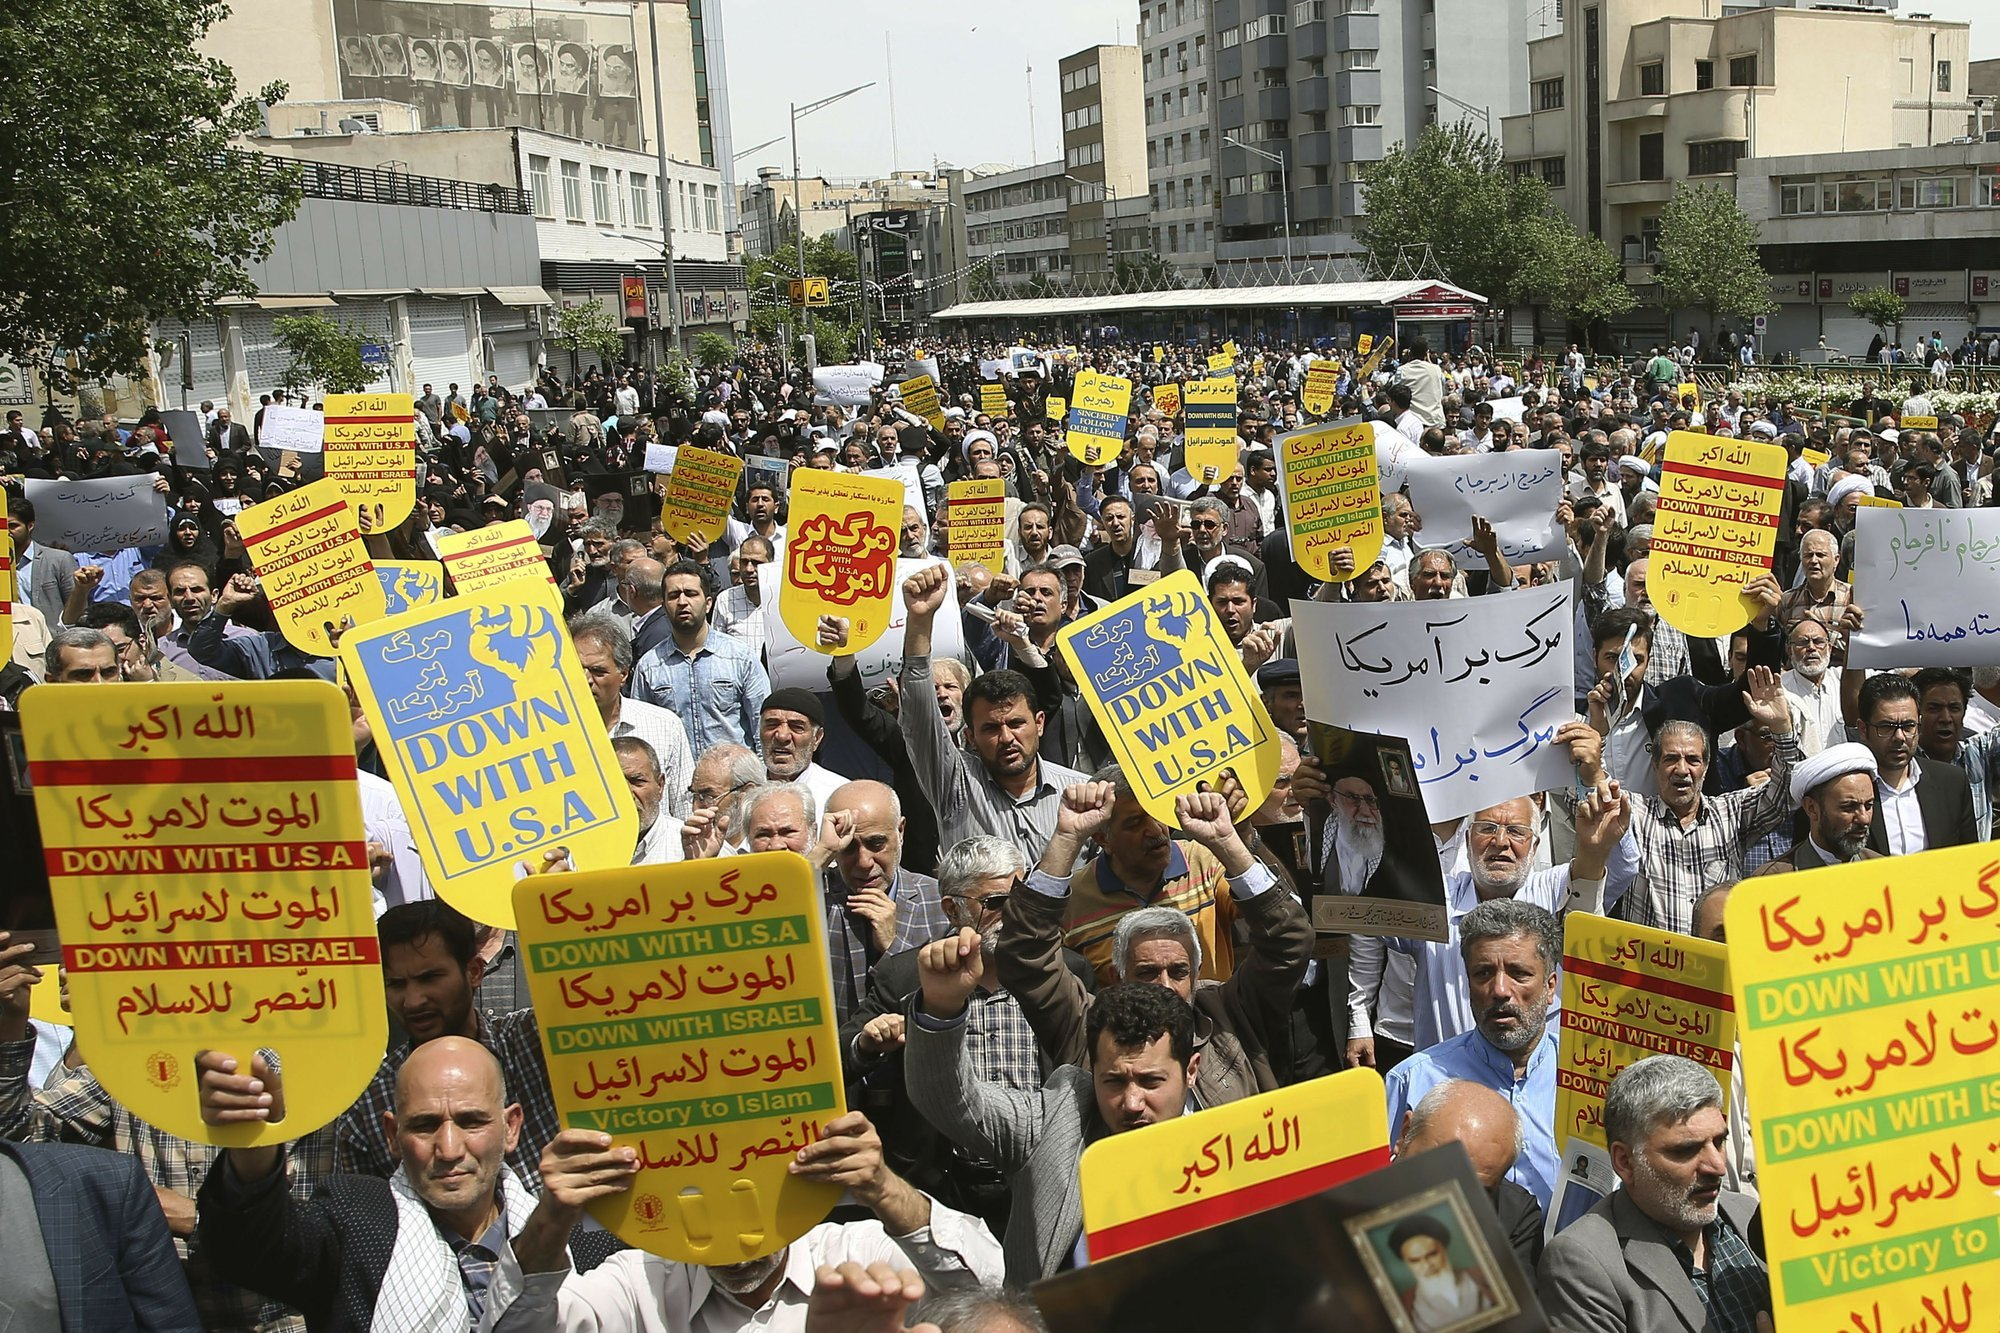 Worshippers chant slogans against the United States and Israel during a rally after Friday prayers in Tehran, Iran. — AP